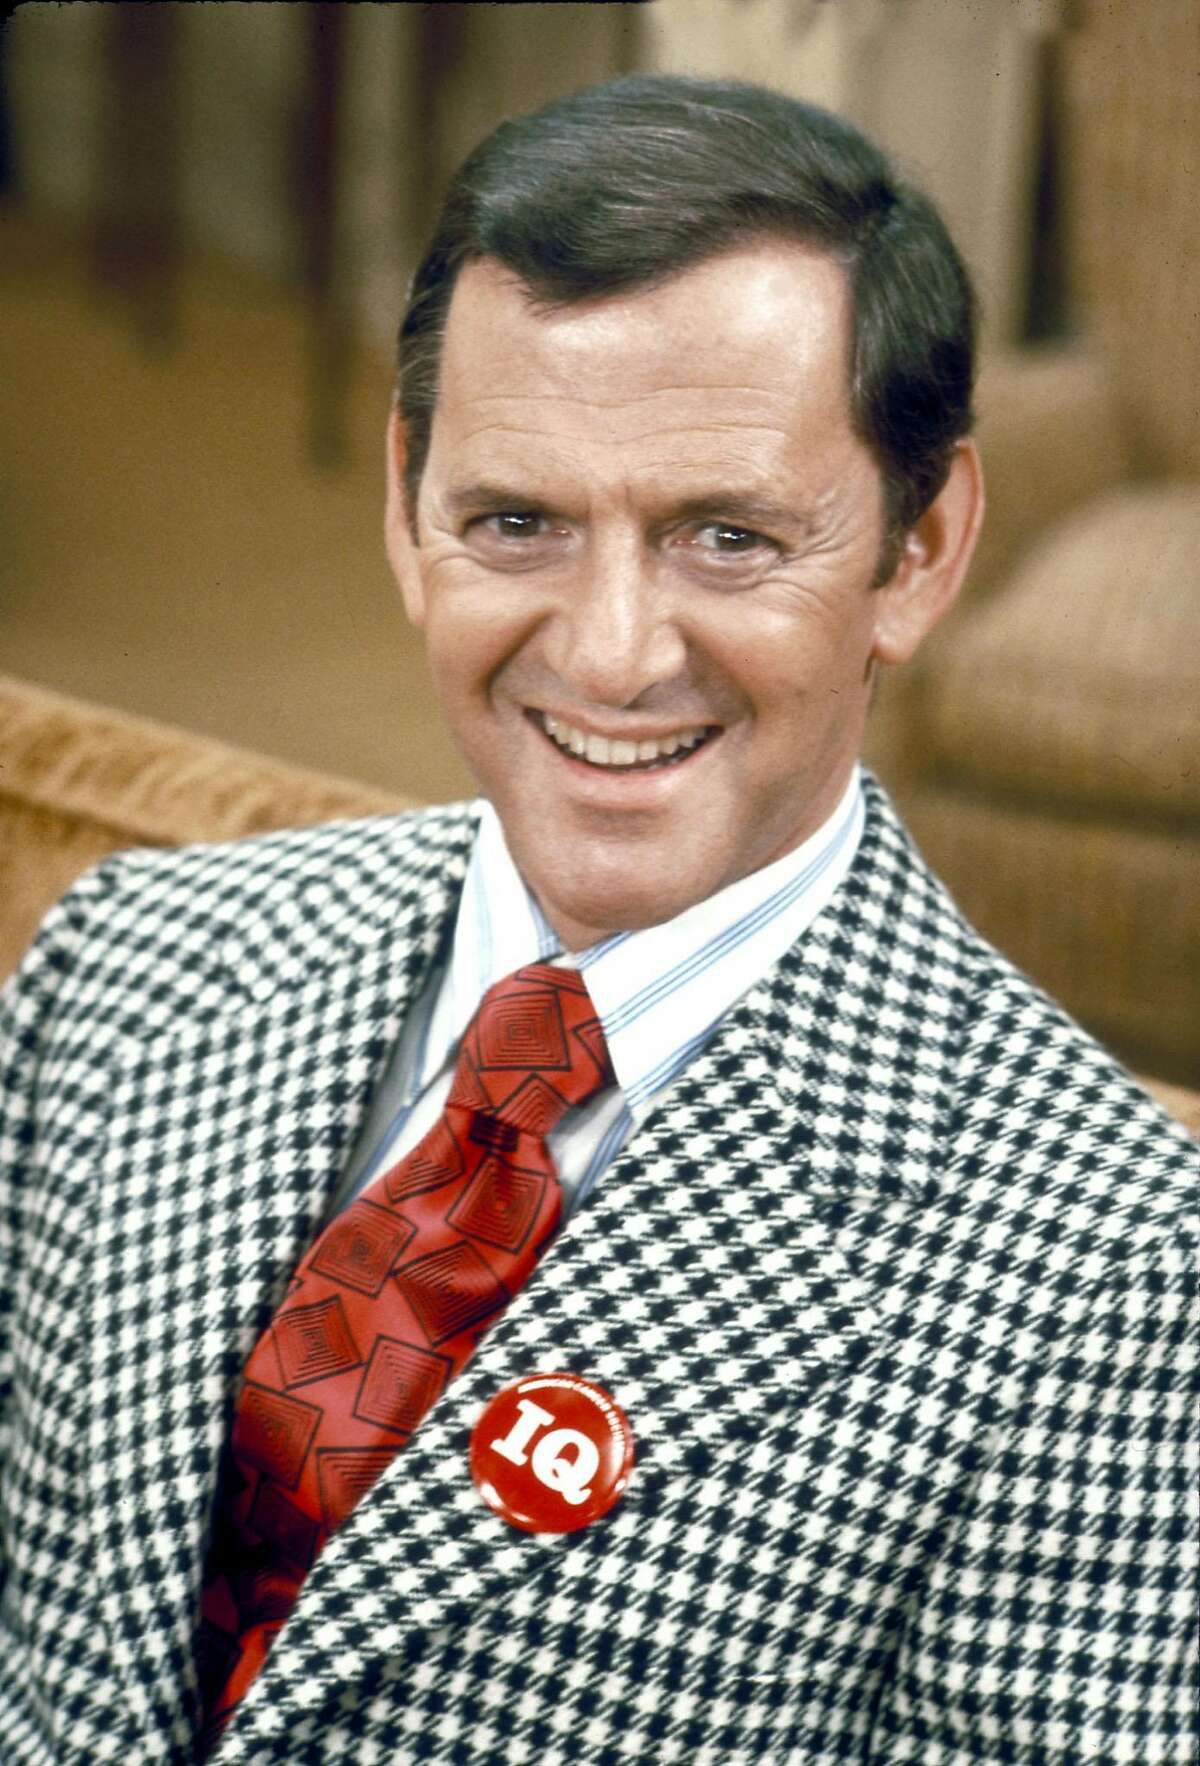 """Tony Randall, shown in character in 1972, in the ABC television comedy series """"The Odd Couple."""" Randall, the comic actor best known for playing fastidious Felix Unger on """"The Odd Couple,'' died Monday night, May 17, 2004, in New York. He was 84.(AP Photo/ABC Photo Archive). HOUCHRON CAPTION (05/19/2004): TONY RANDALL 1920-2004."""